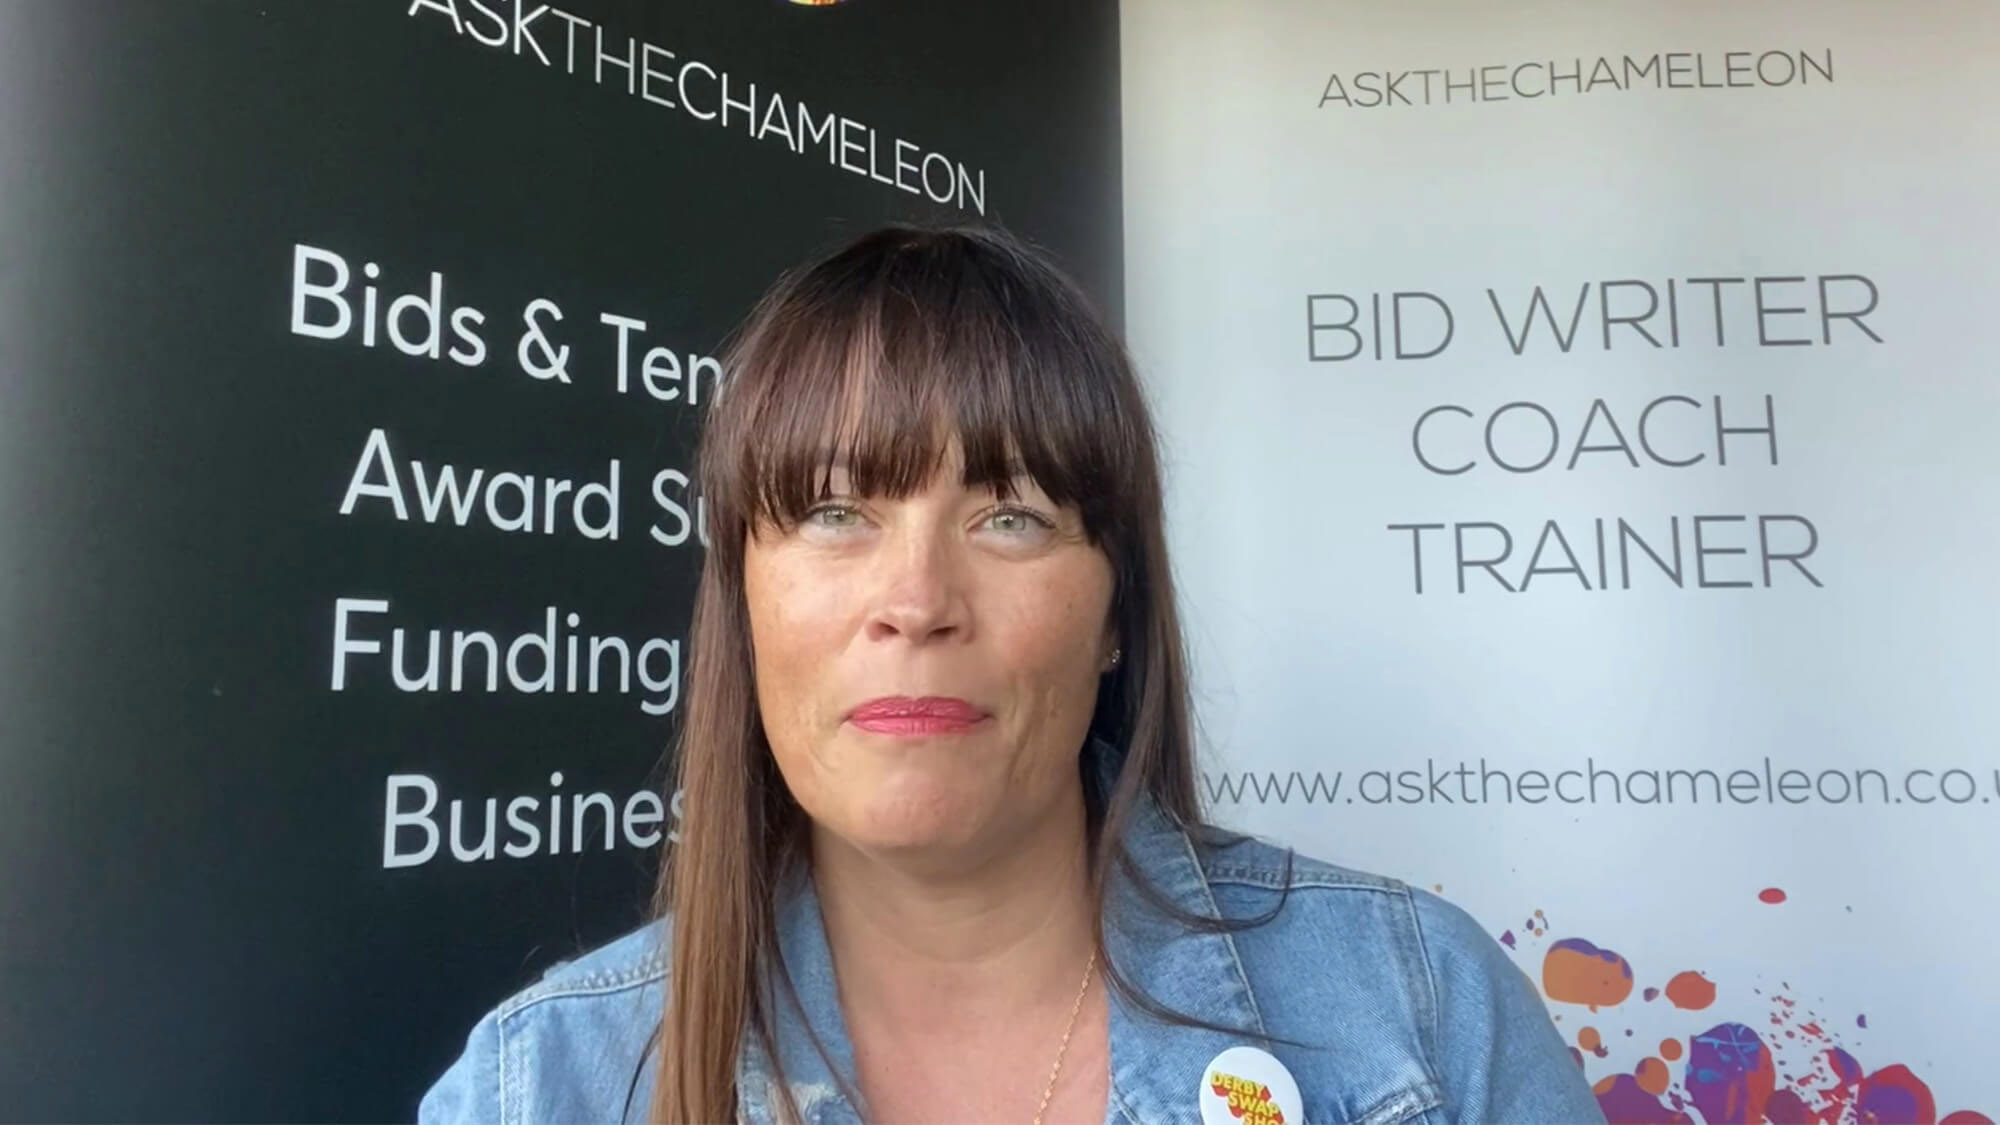 Rachel standing next to a sign that reads 'Bid writer coach trainer' and displays a link to a website: www.askthechameleon.co.uk